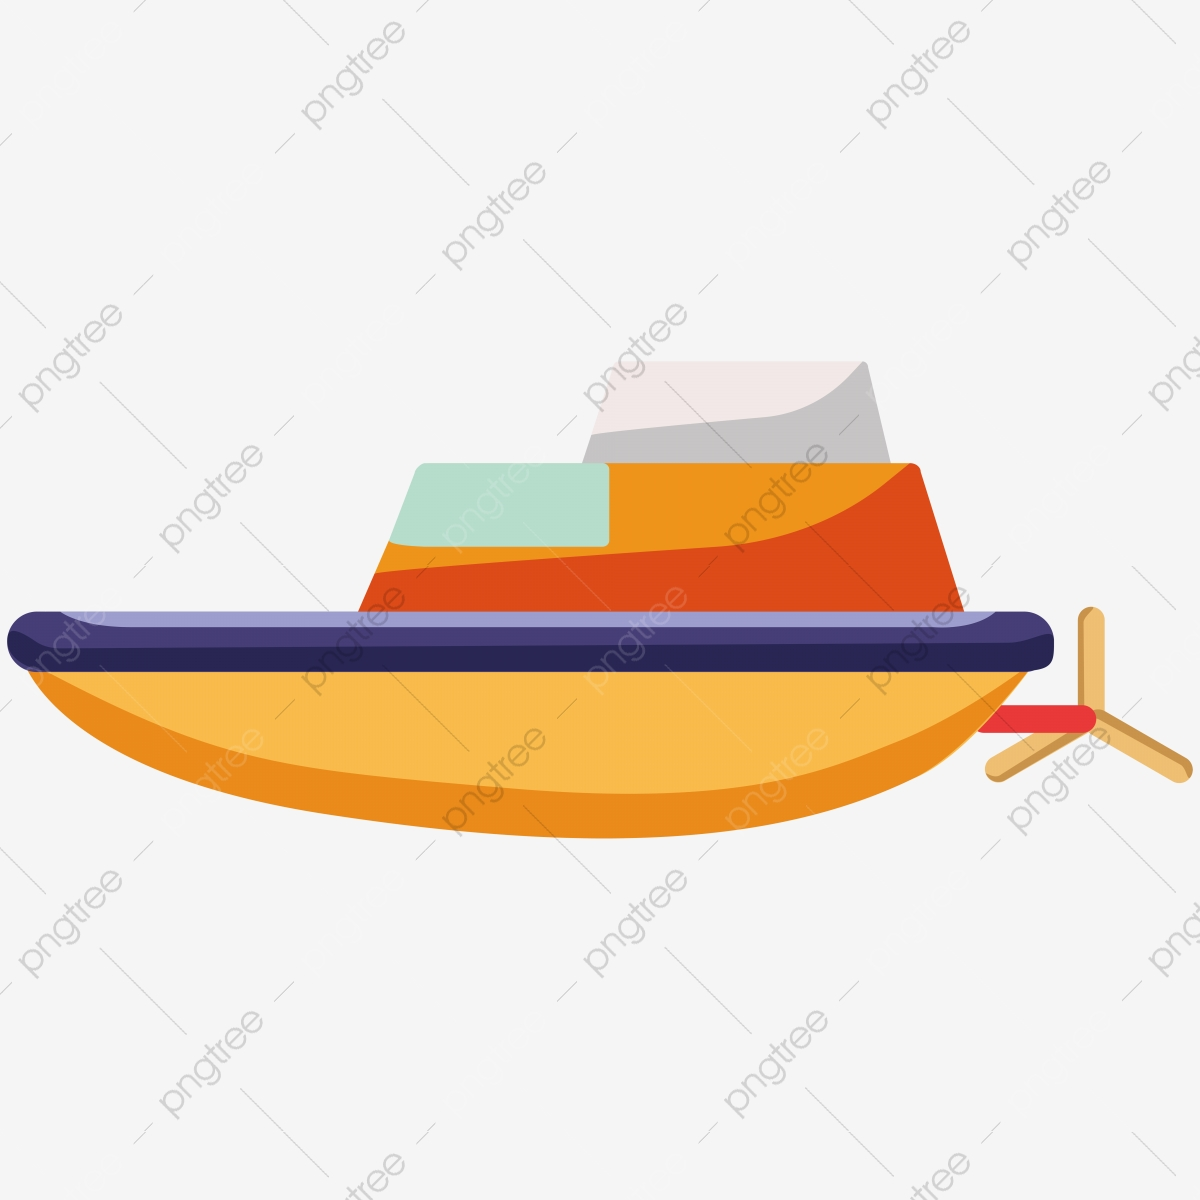 Hand Drawn Cartoon Boat Illustration Hand Drawn Cartoon Boat Png And Vector With Transparent Background For Free Download